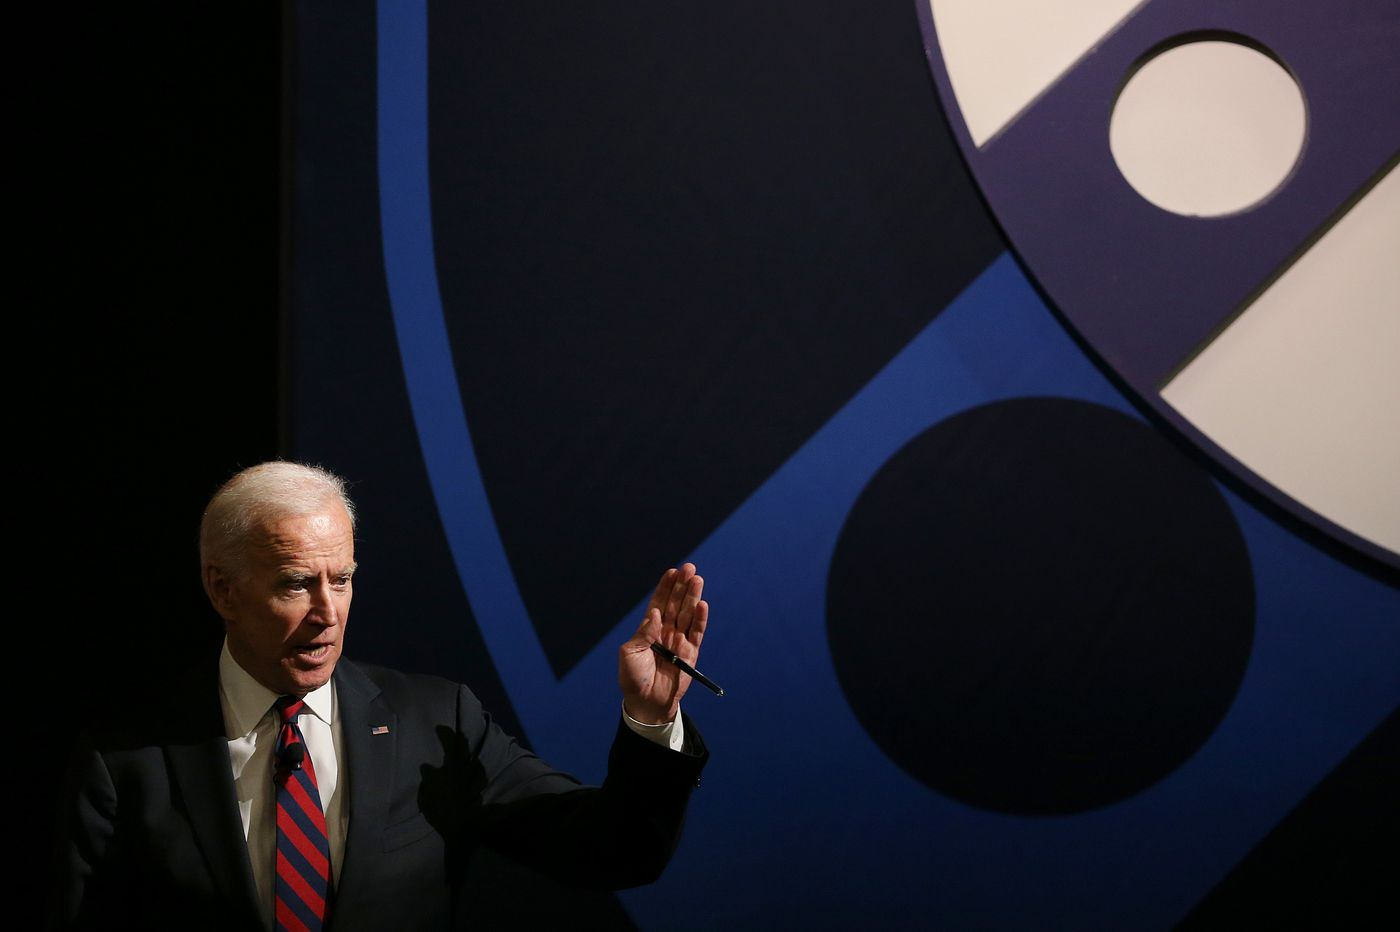 Penn has paid Joe Biden more than $900K since he left the White House. What did he do to earn the money?